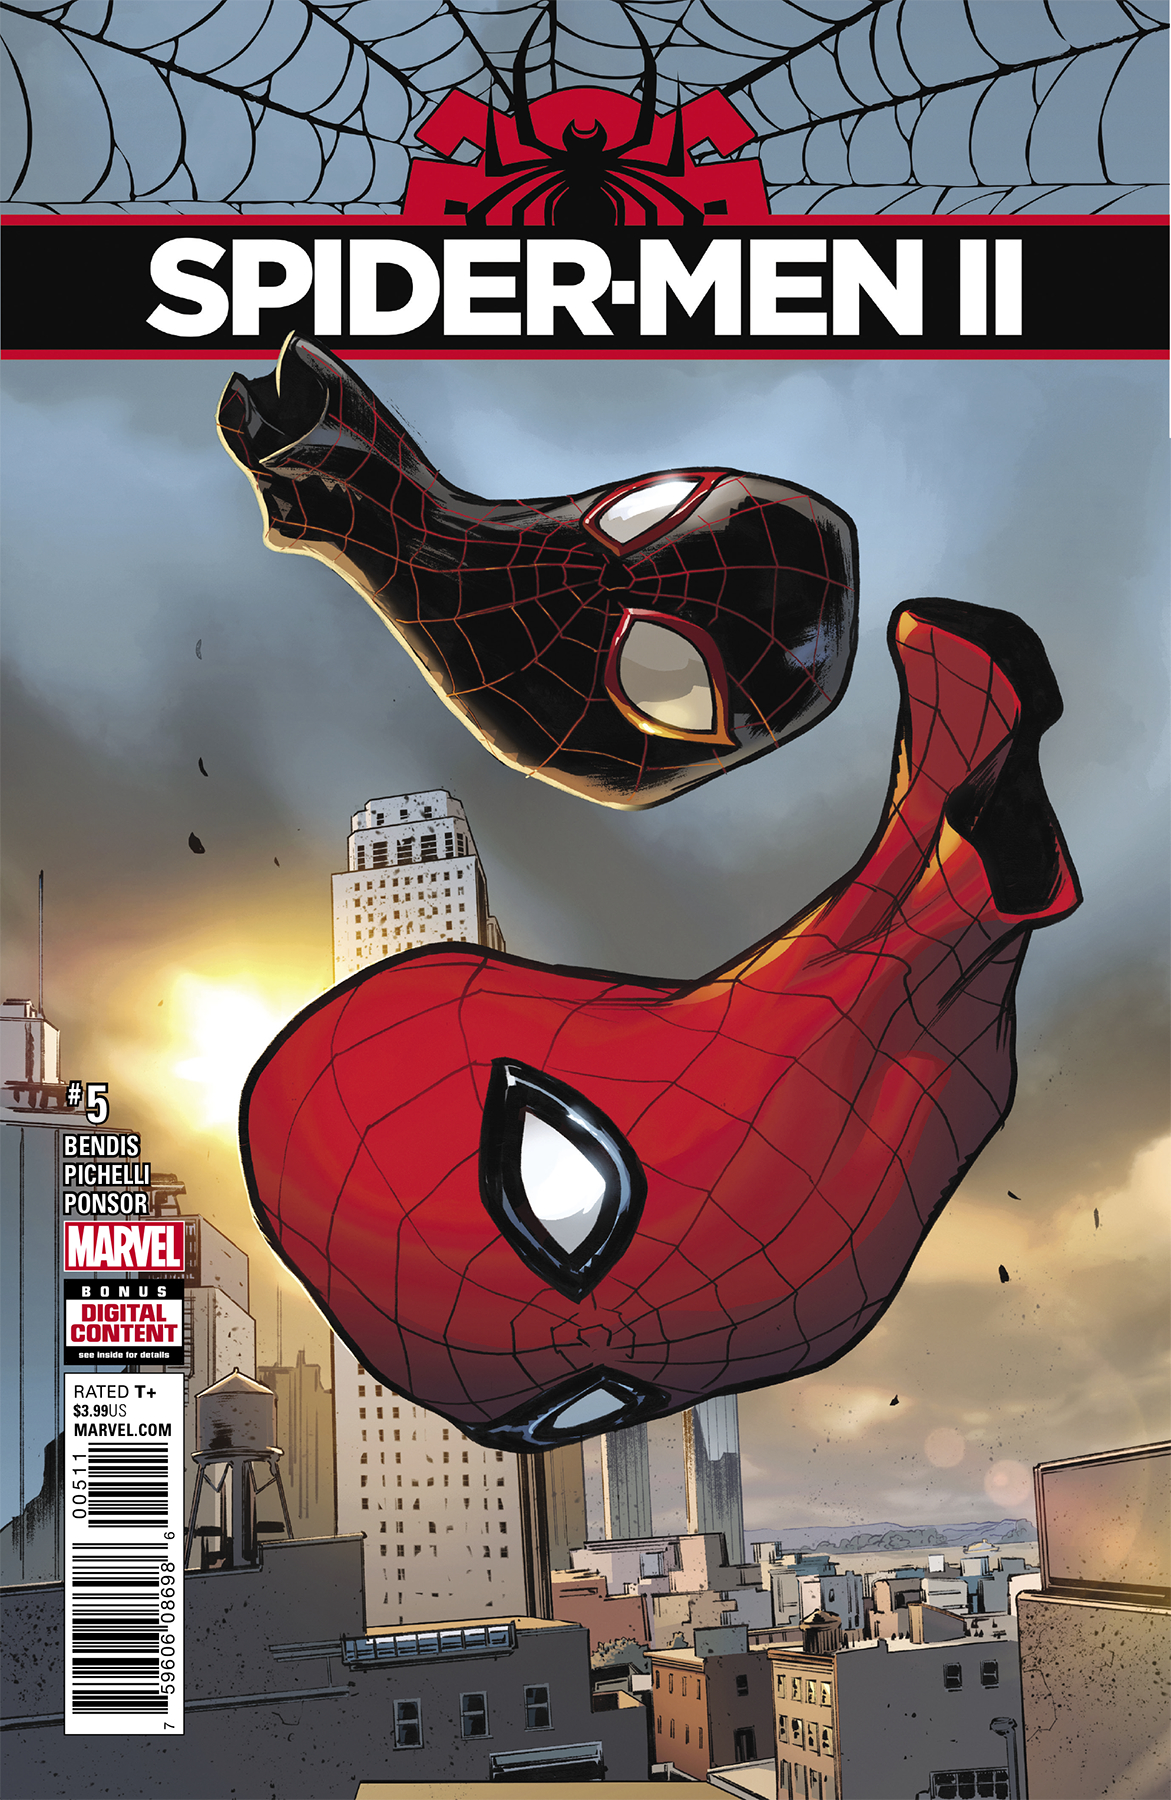 SPIDER-MEN II #5 (OF 5)